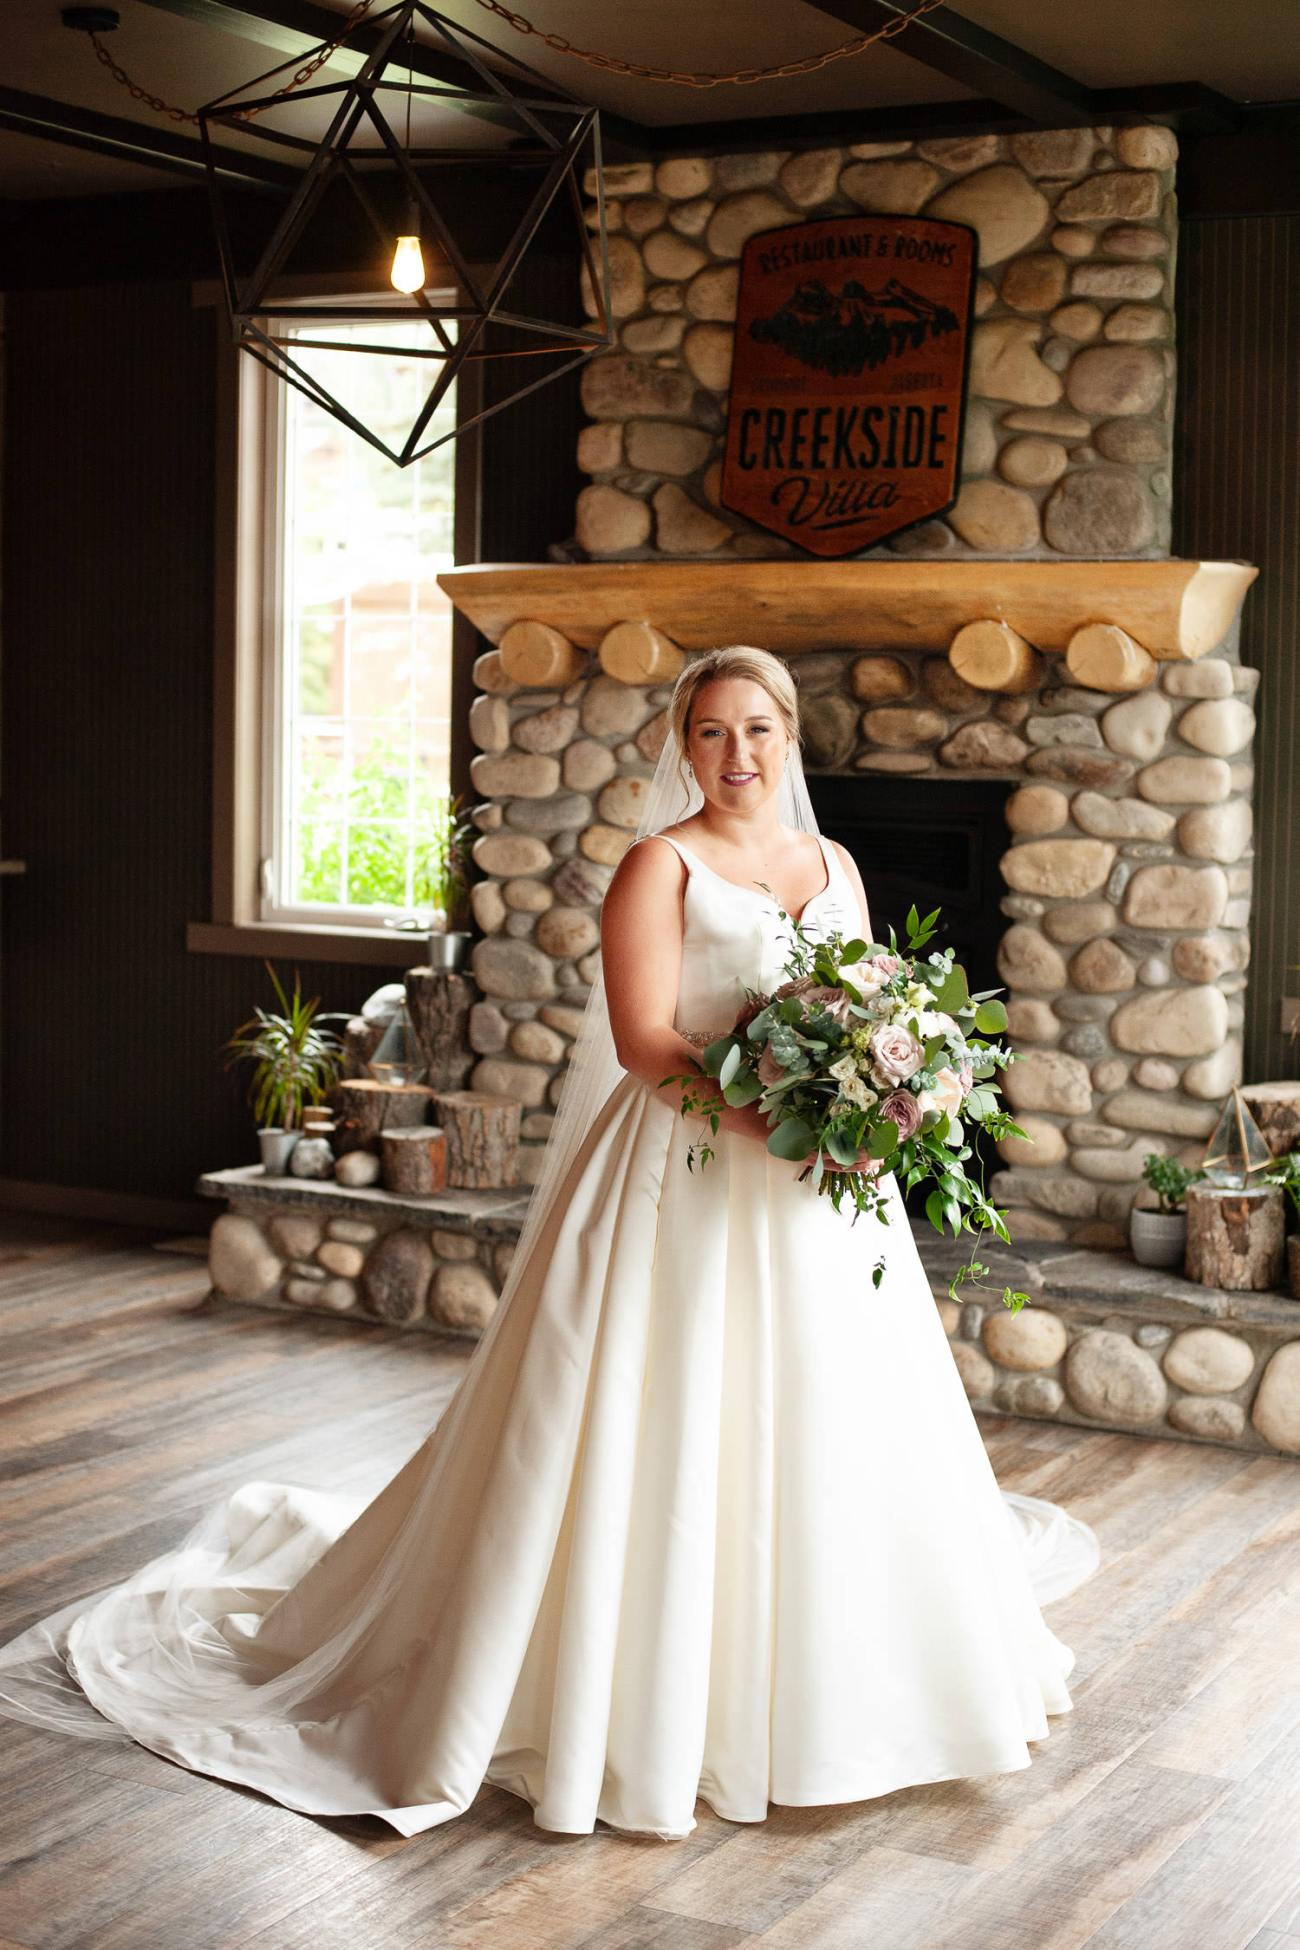 Bride poses at Creekside Villa in Canmore captured by Tara Whittaker Photography